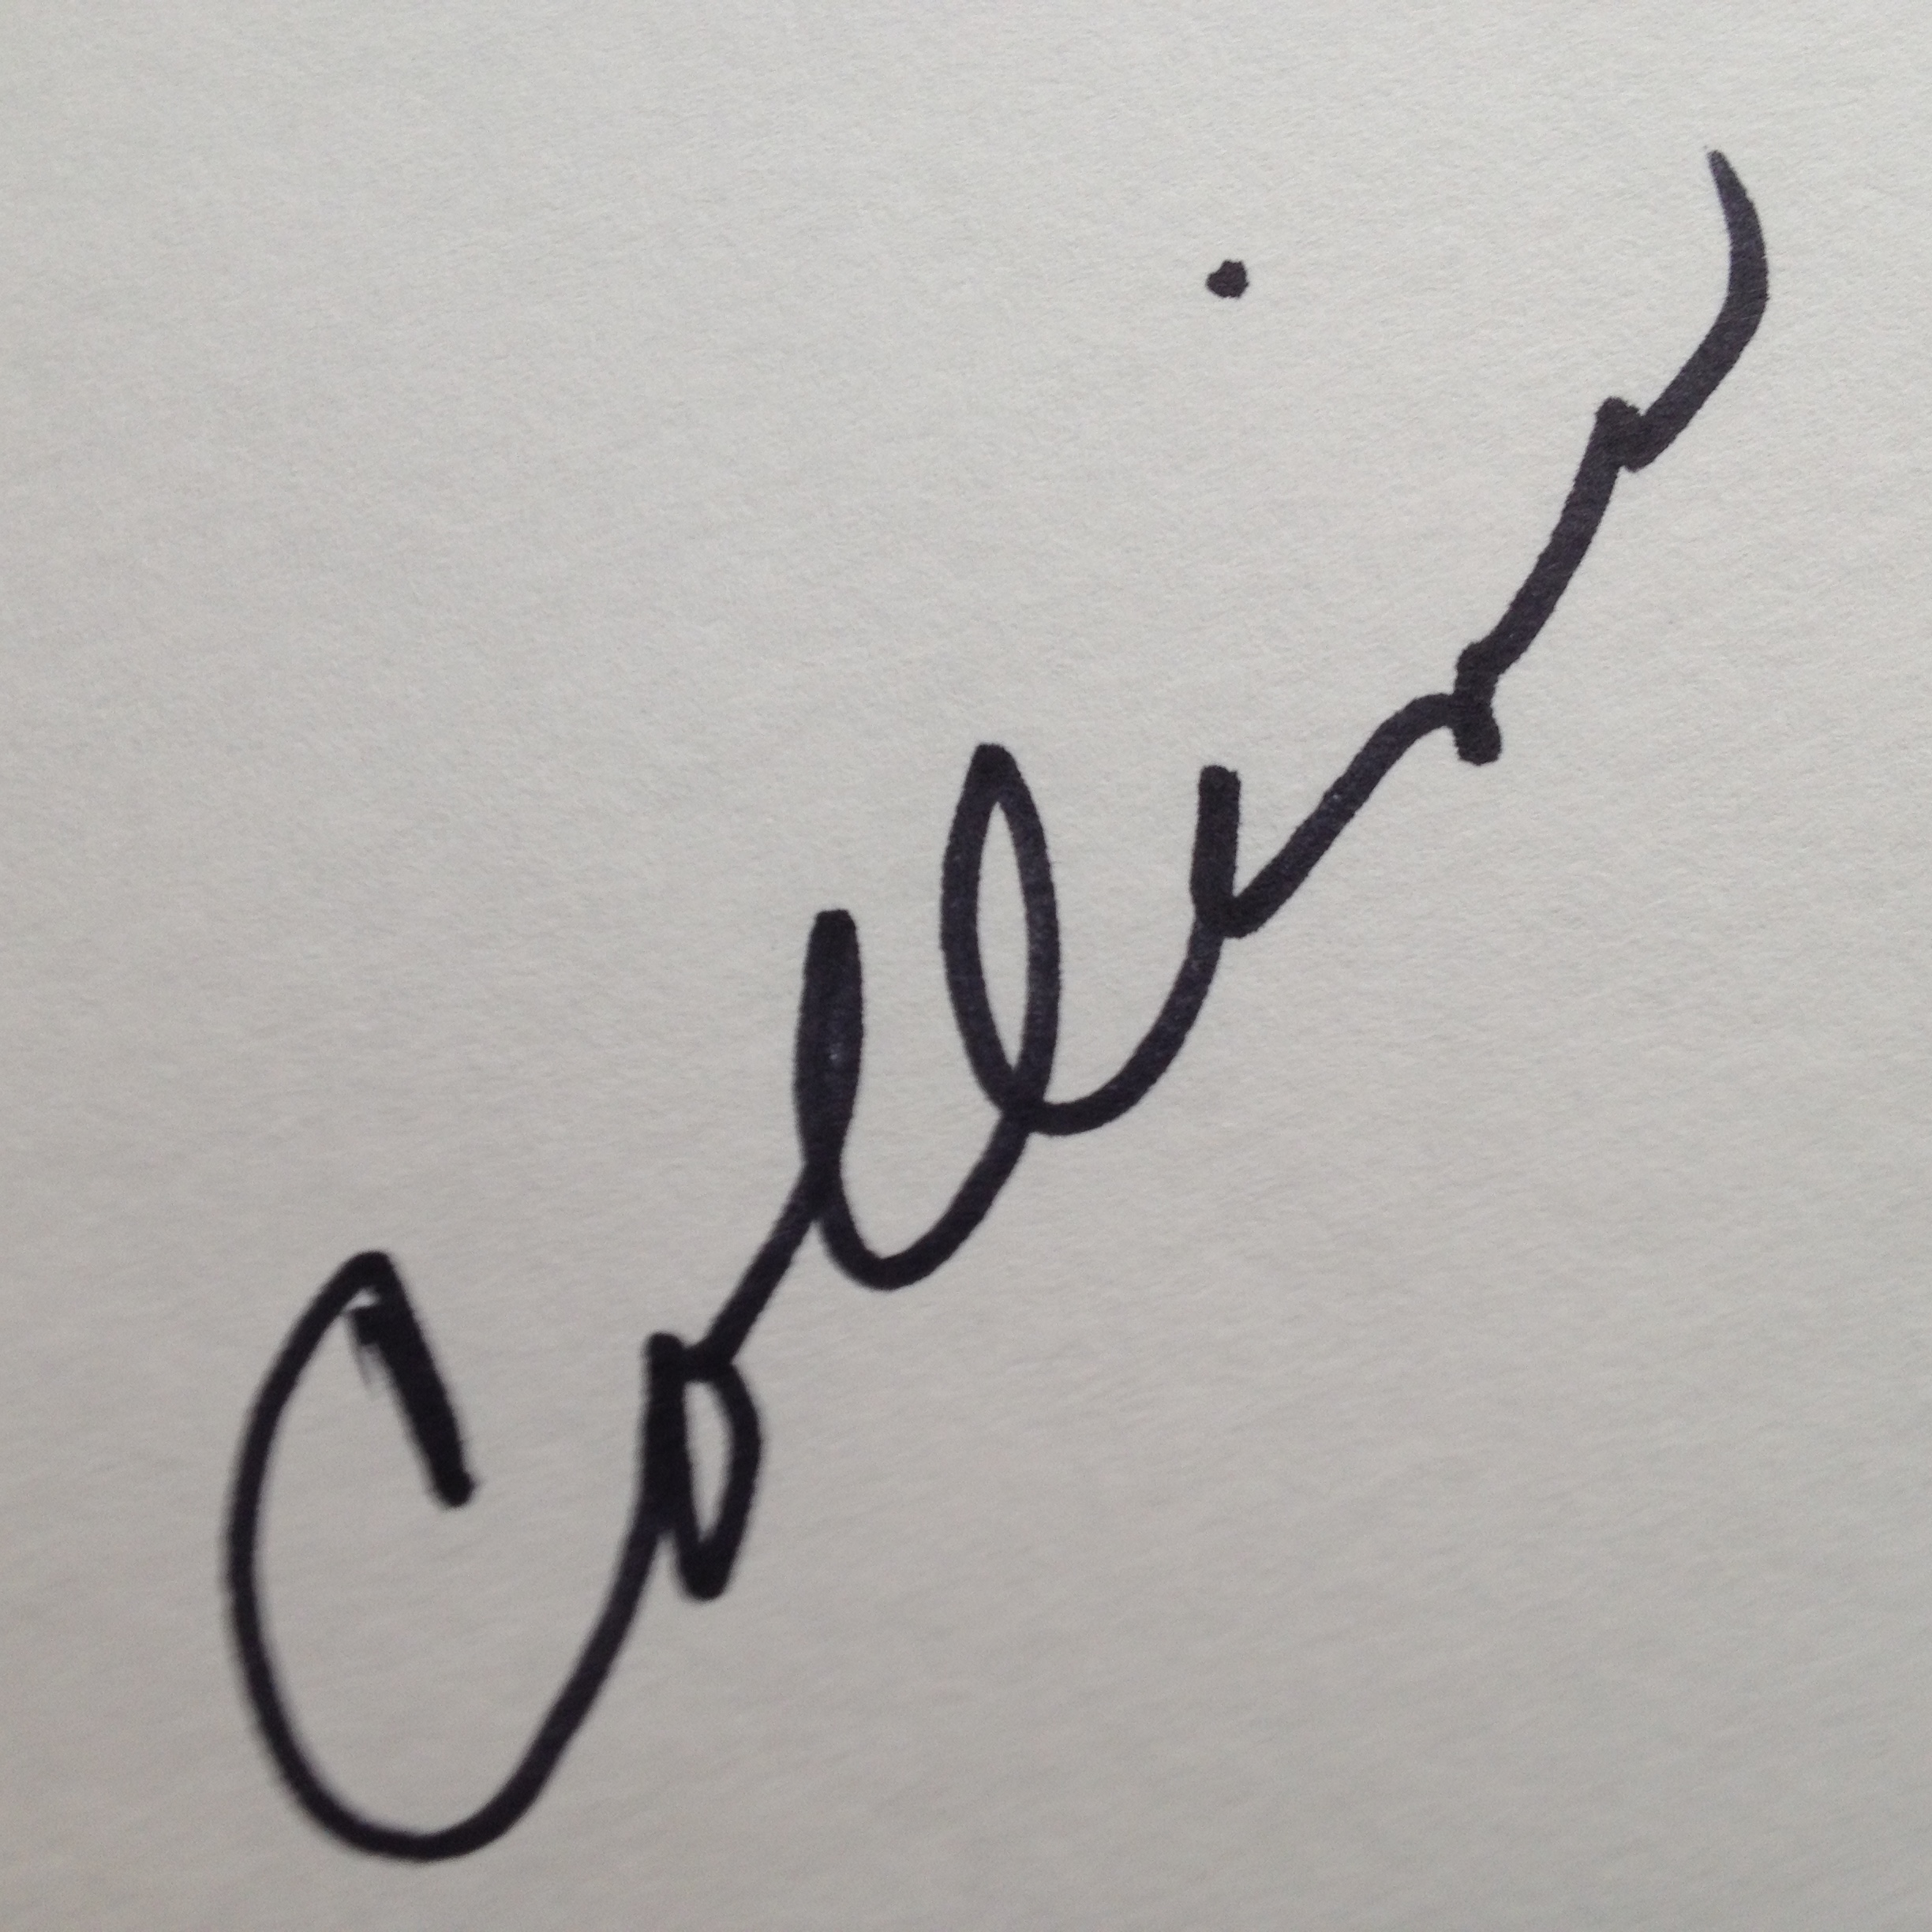 Pat lowery Collins Signature